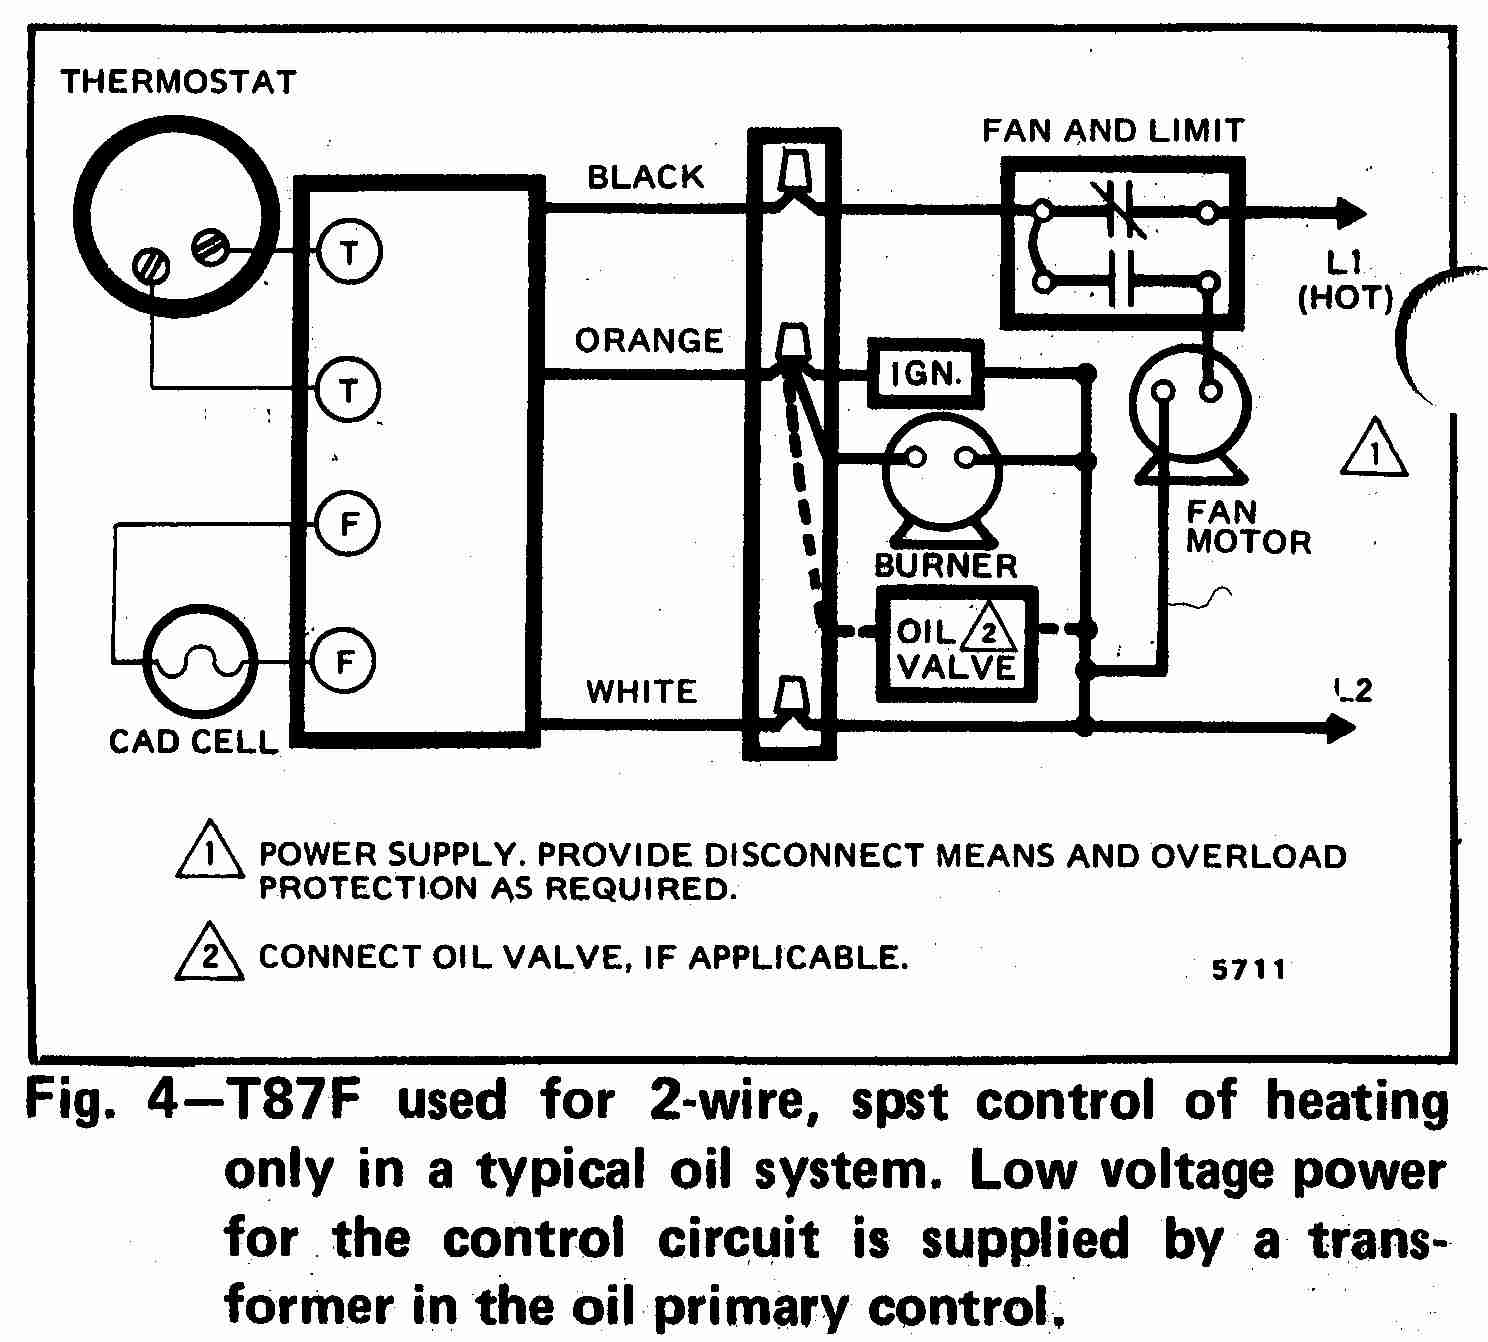 TT_T87F_0002_2W_DJF room thermostat wiring diagrams for hvac systems honeywell thermostat wiring diagram at soozxer.org